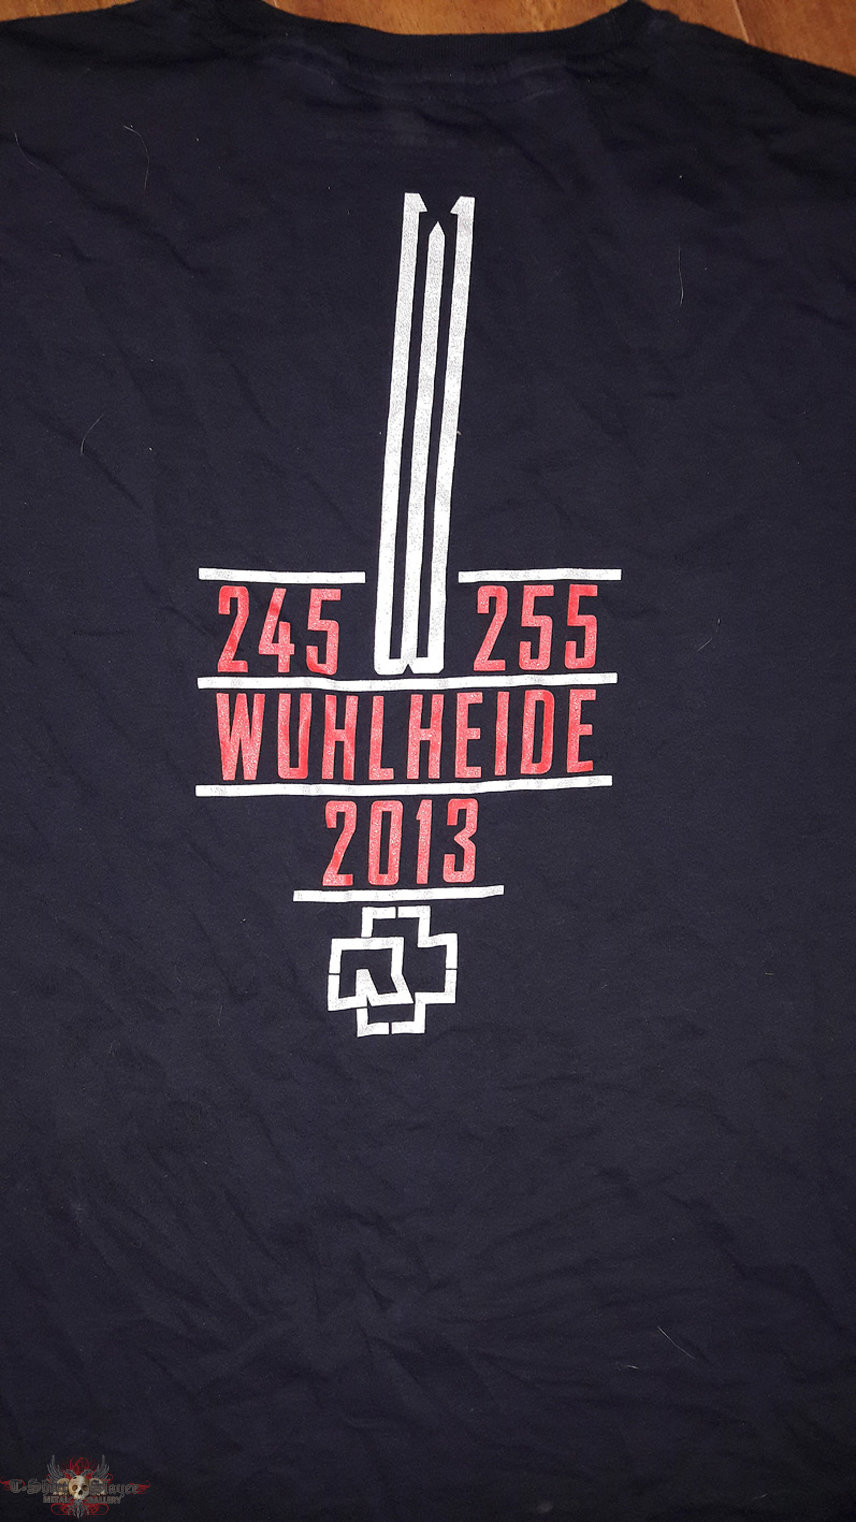 Tourshirt for the 2 concerts at Wuhlheide in Berlin in May 2013